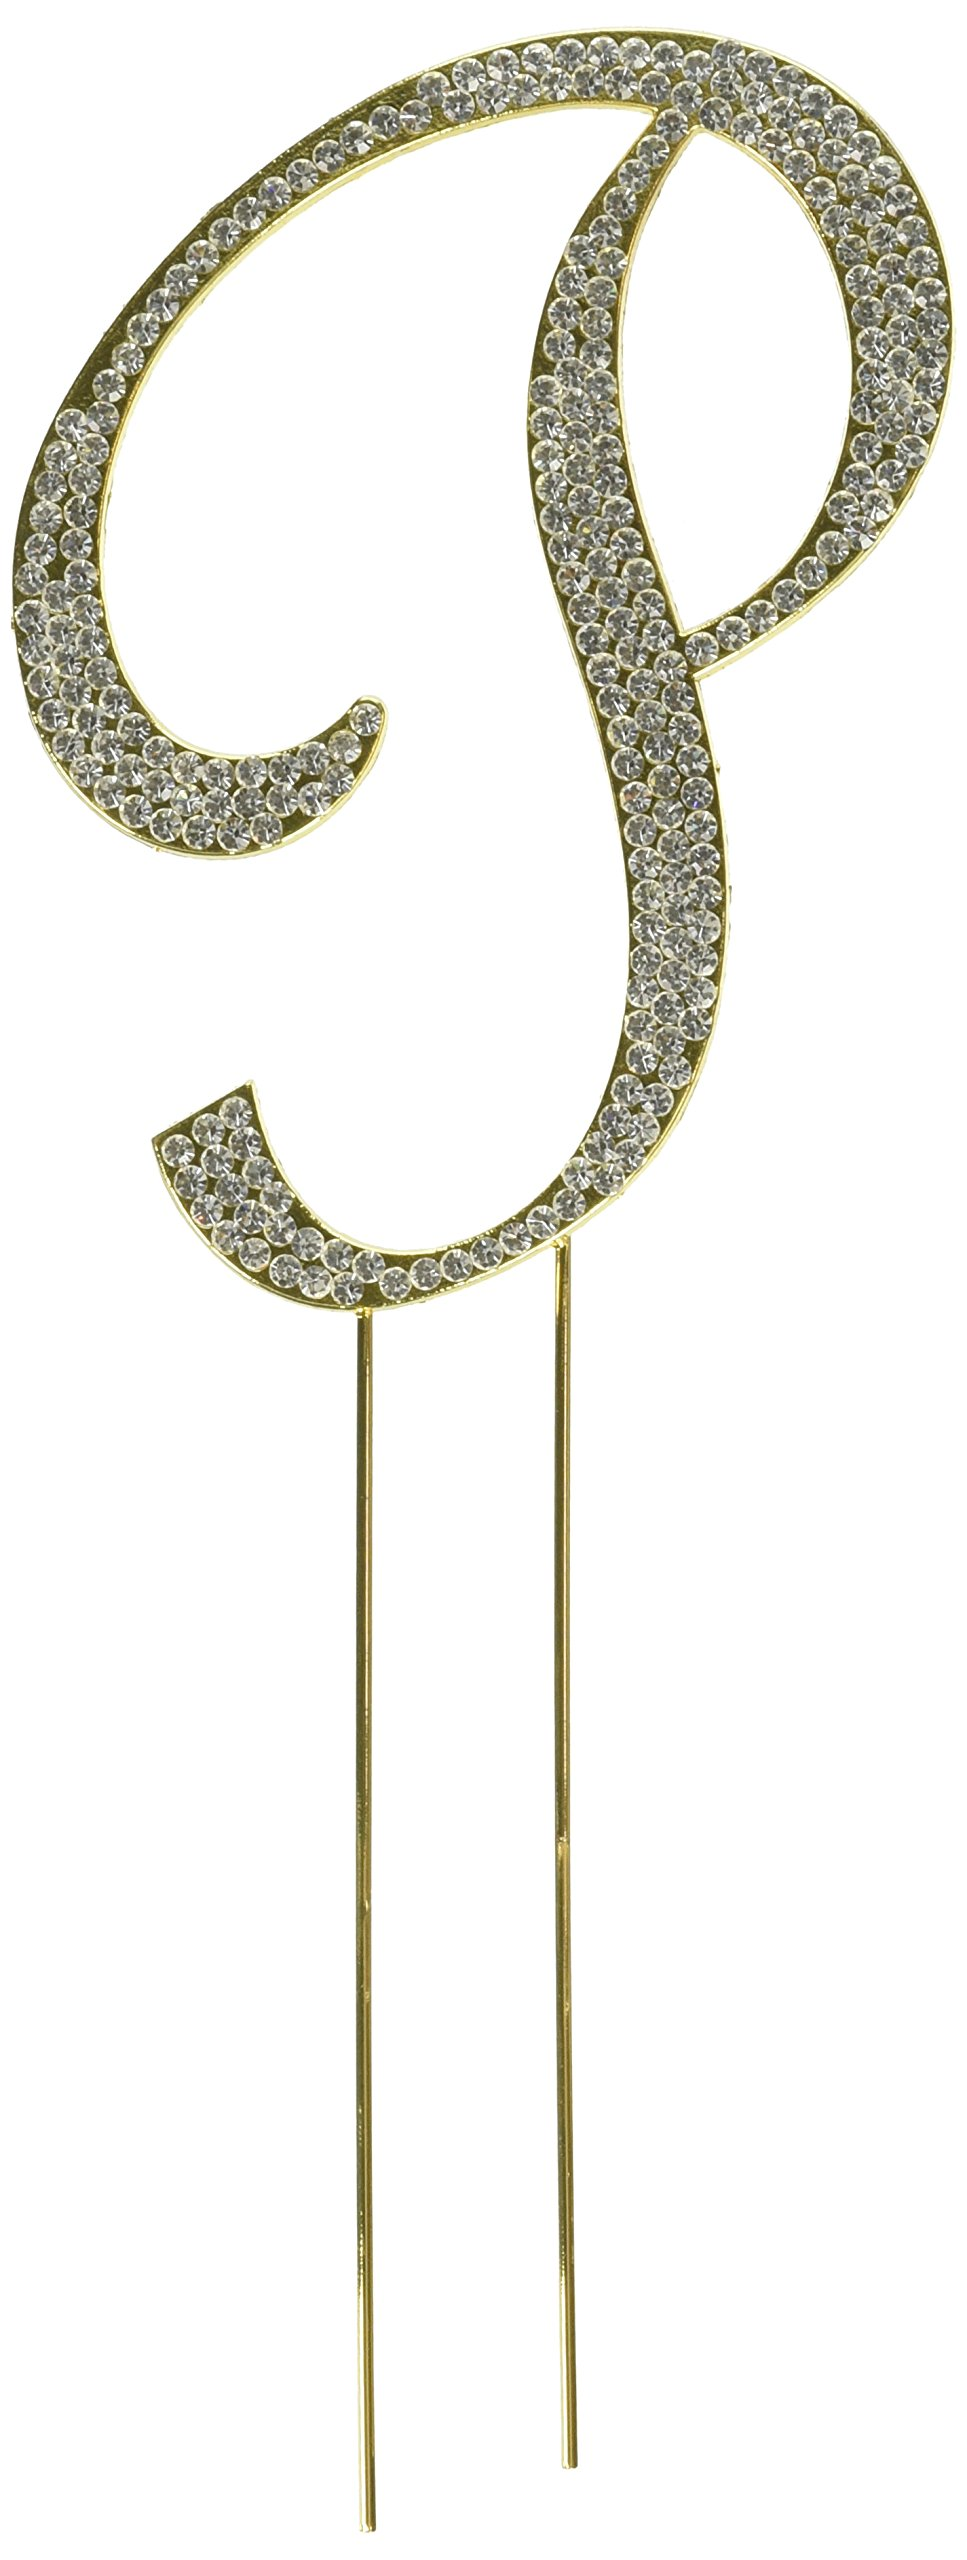 Unik Occasions Sparkling Collection Crystal Rhinestone Monogram Cake Topper - Letter P, Large, Gold